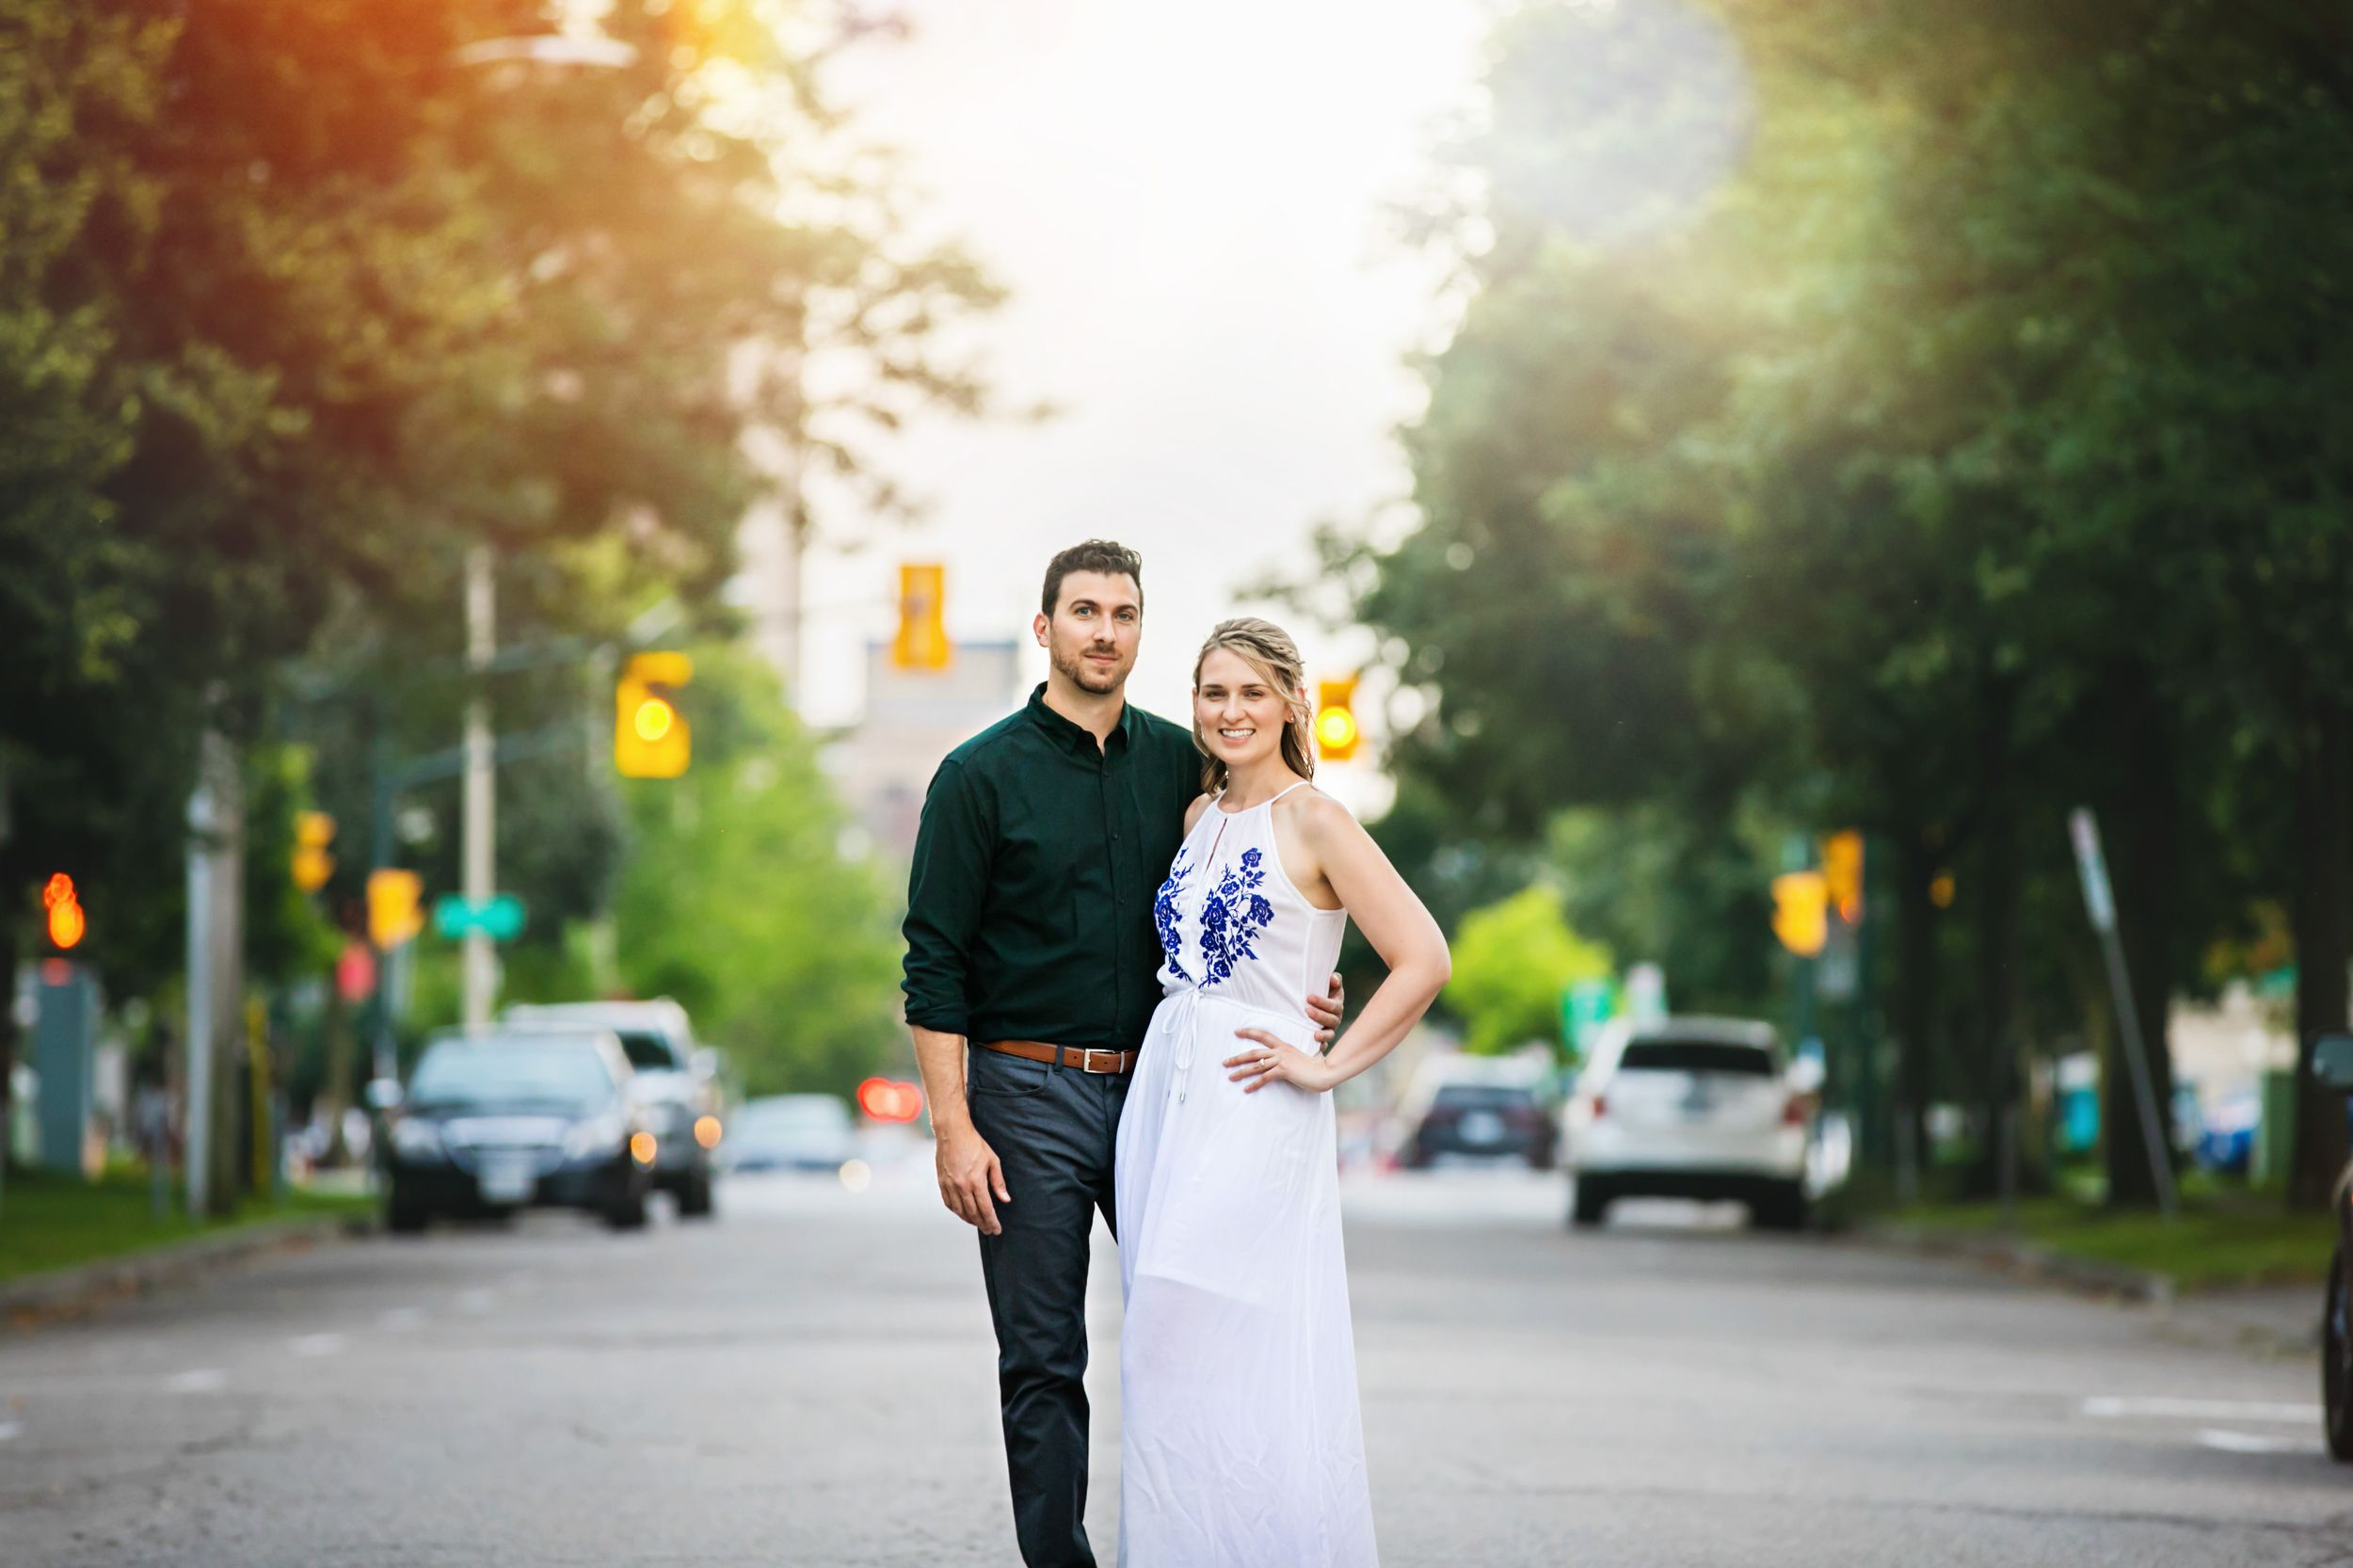 Downtown London Ontario Victoria Park Engagement Photos by Shawn VanDaele